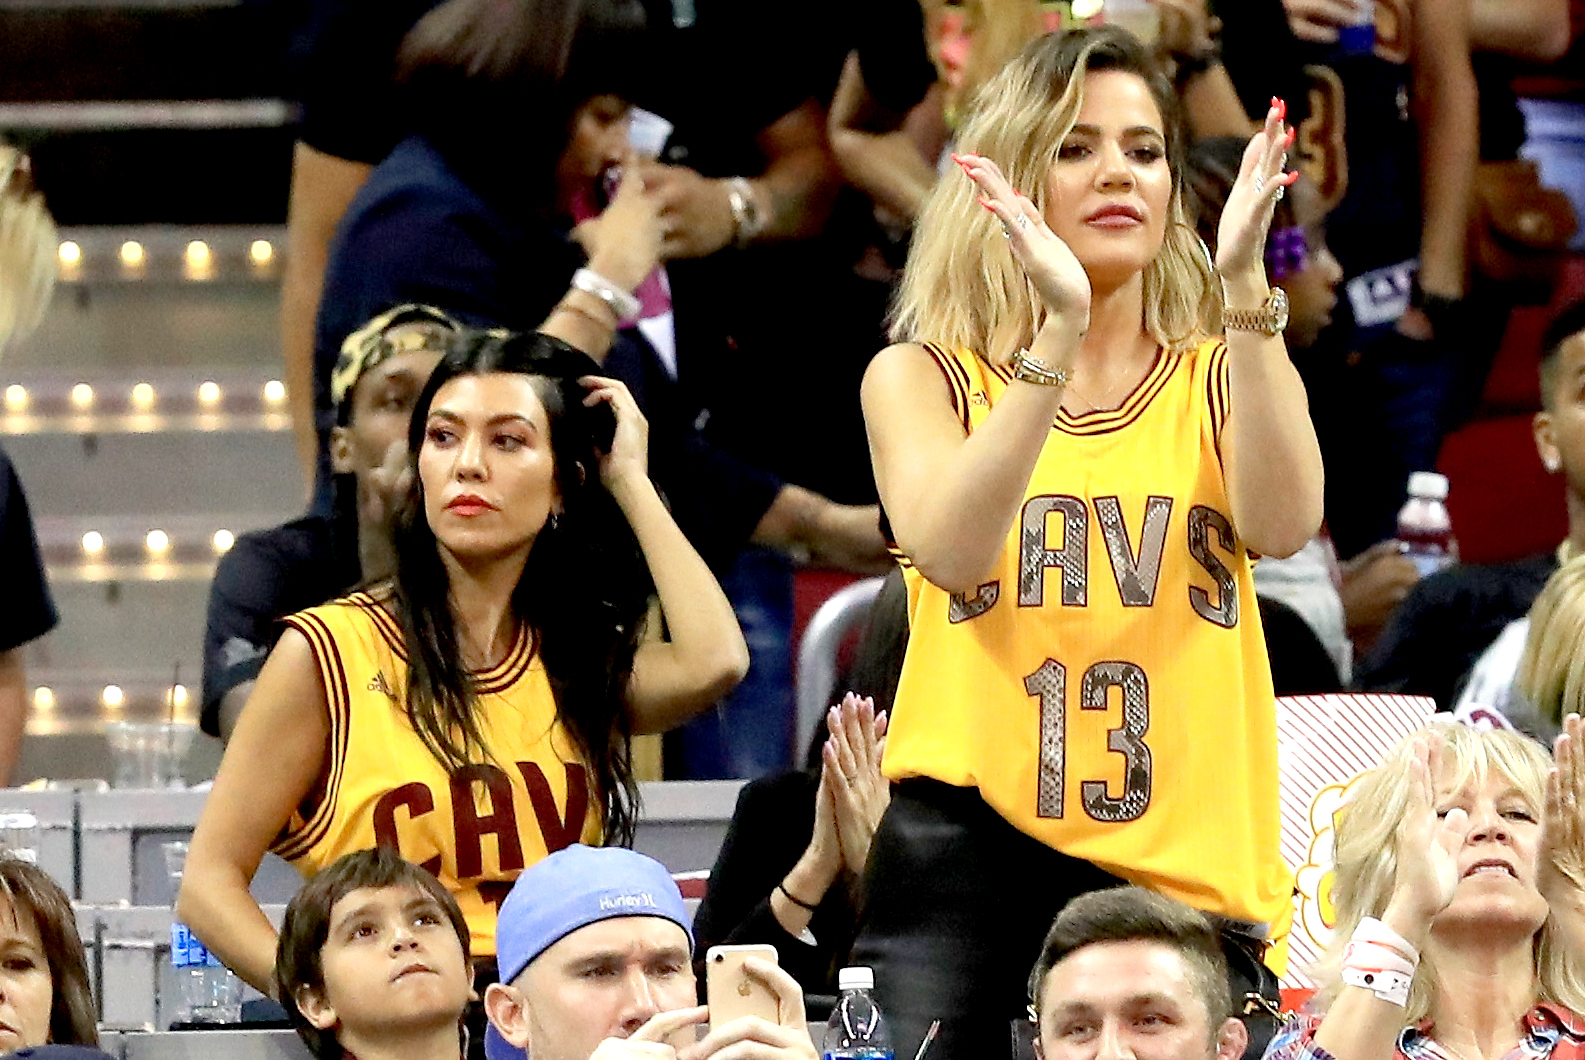 Kourtney Kardashian and Khloe Kardashian attend Game 4 of the 2017 NBA Finals between the Golden State Warriors and the Cleveland Cavaliers at Quicken Loans Arena on June 9, 2017 in Cleveland, Ohio.